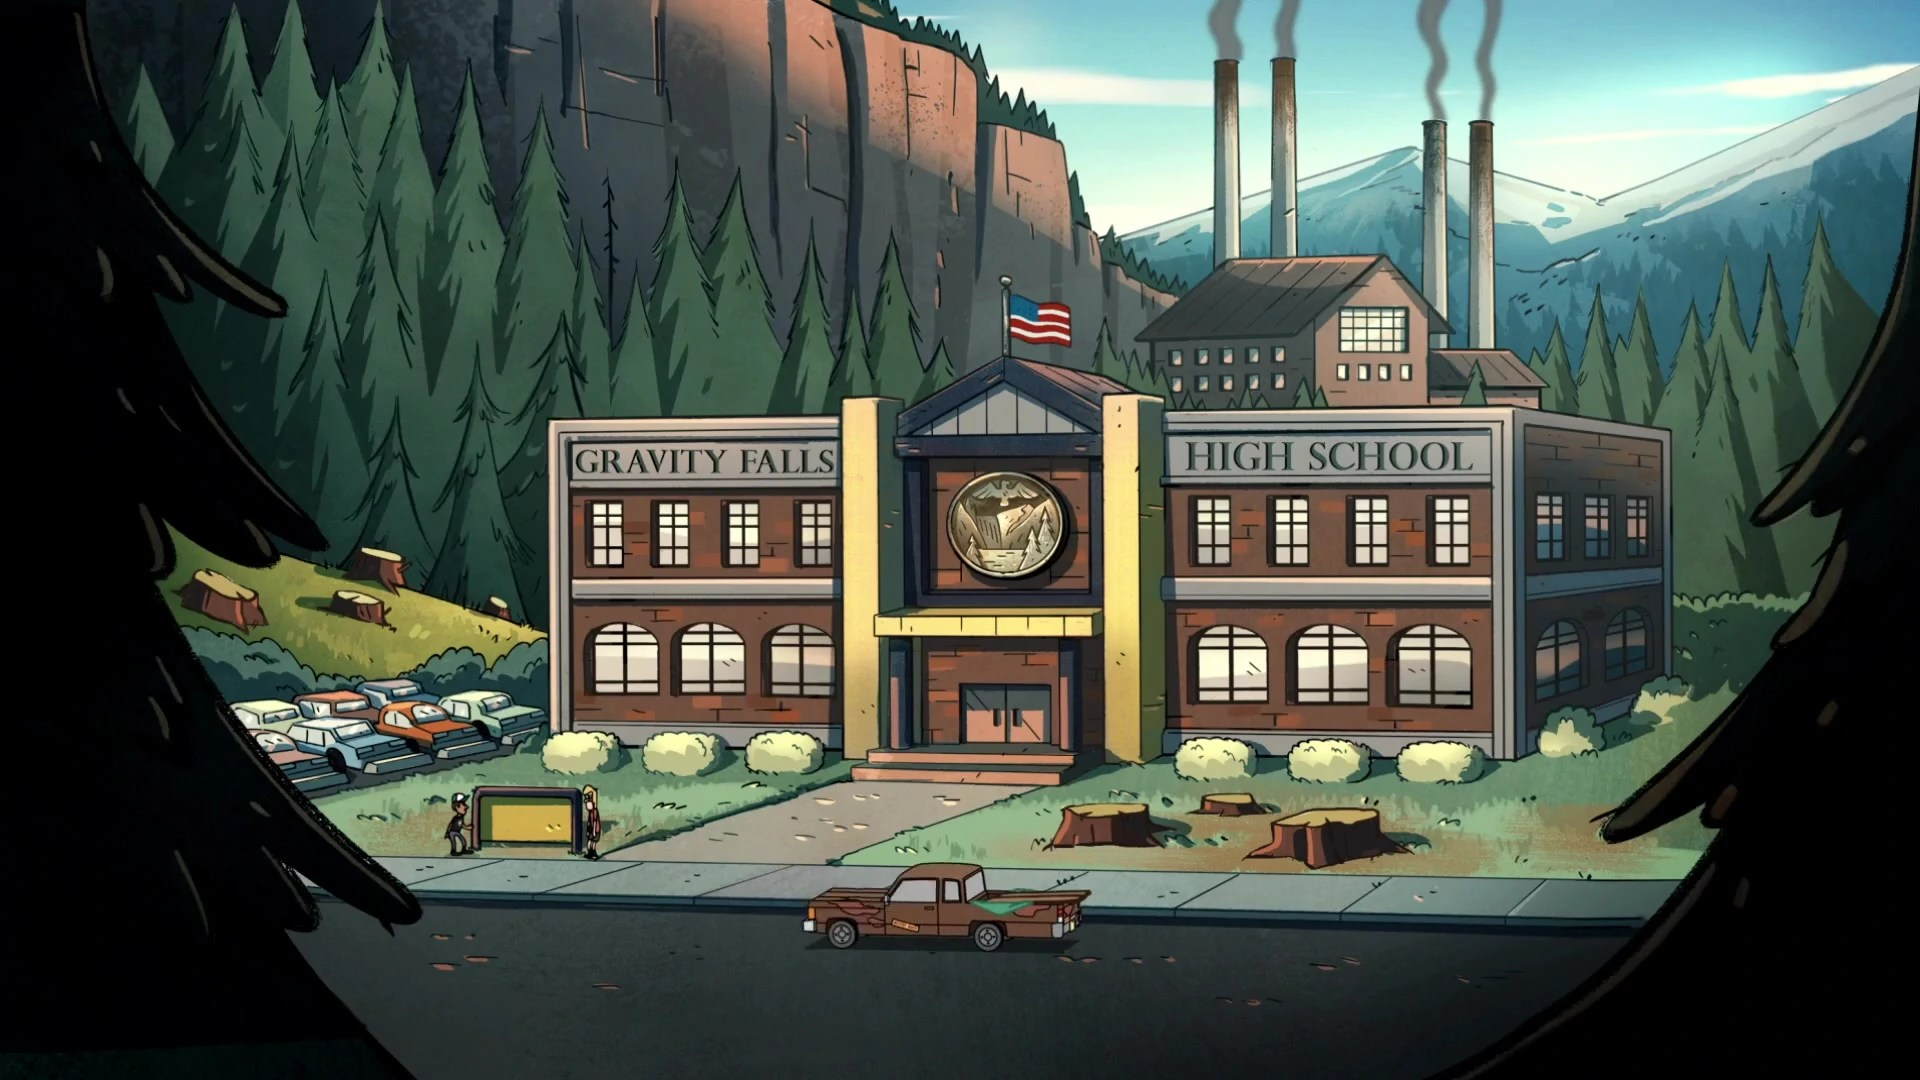 Screenshot Wallpaper Gravity Falls Gravity Falls High School Gravity Falls Wiki Fandom